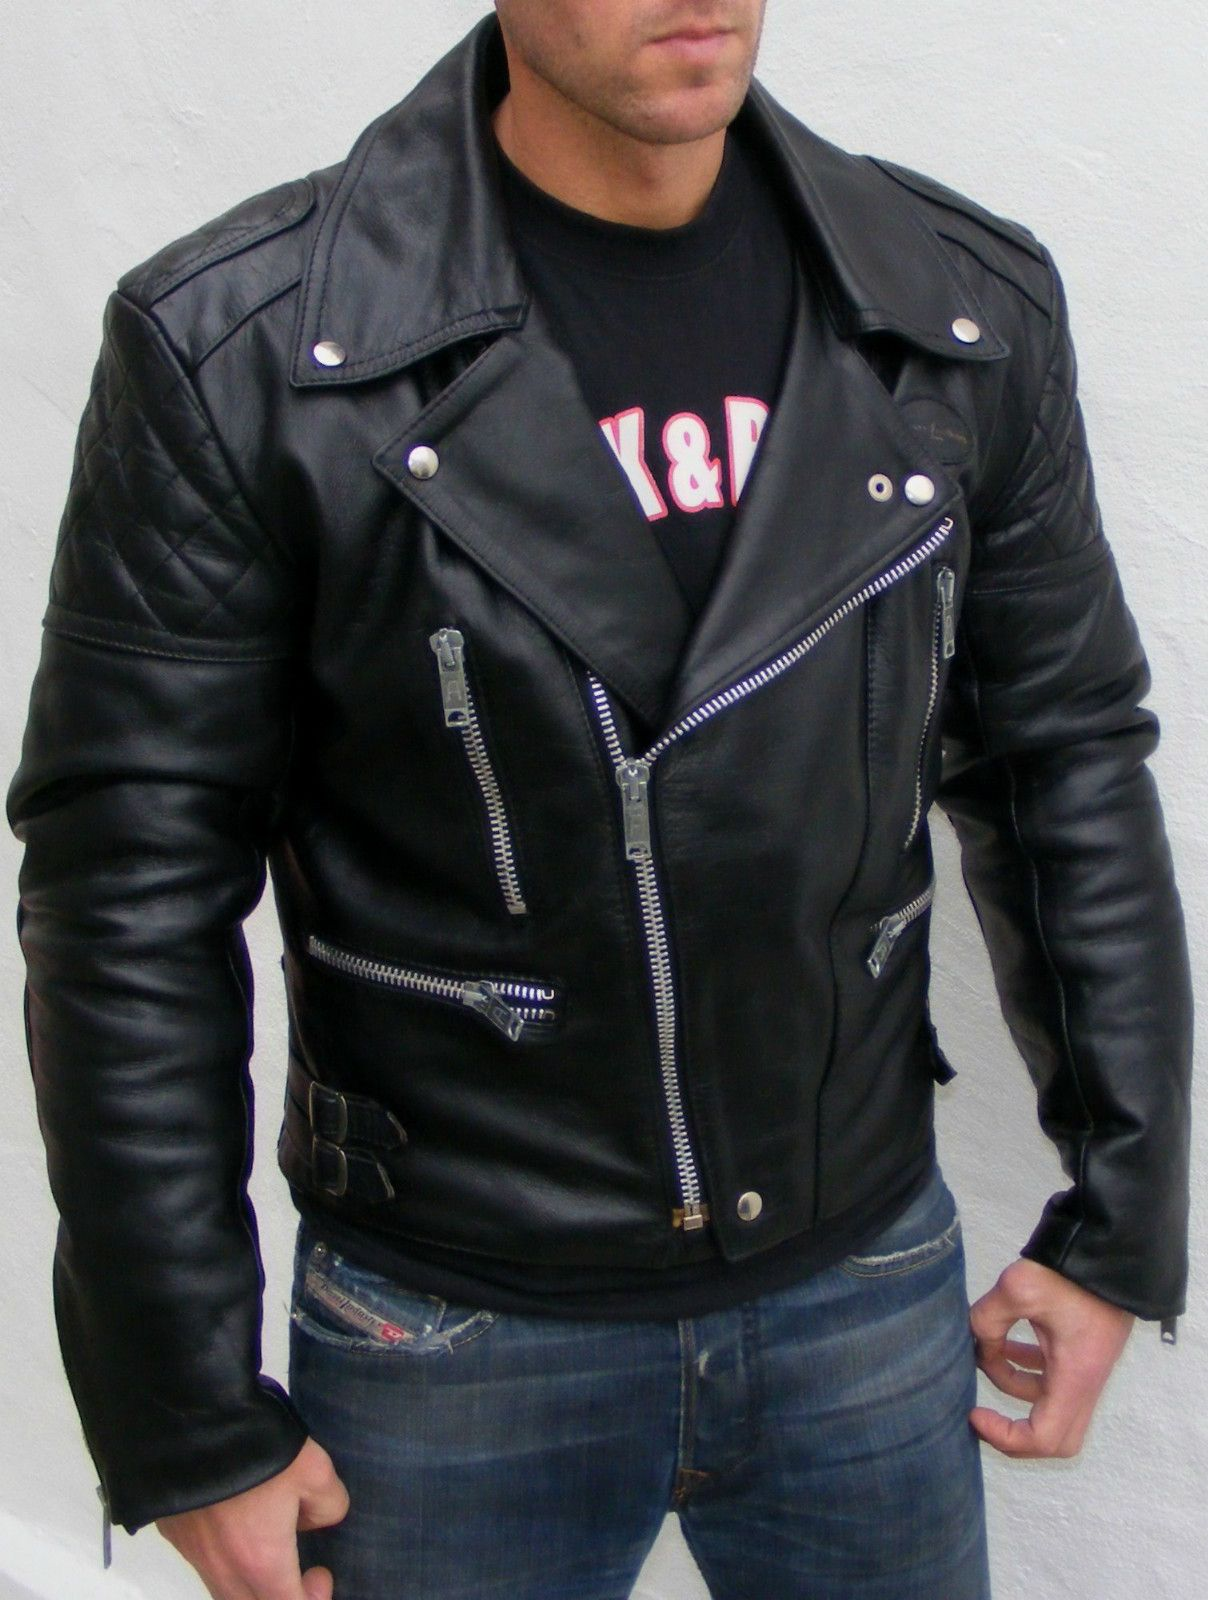 Classic Biker Jacket every man should own a great black